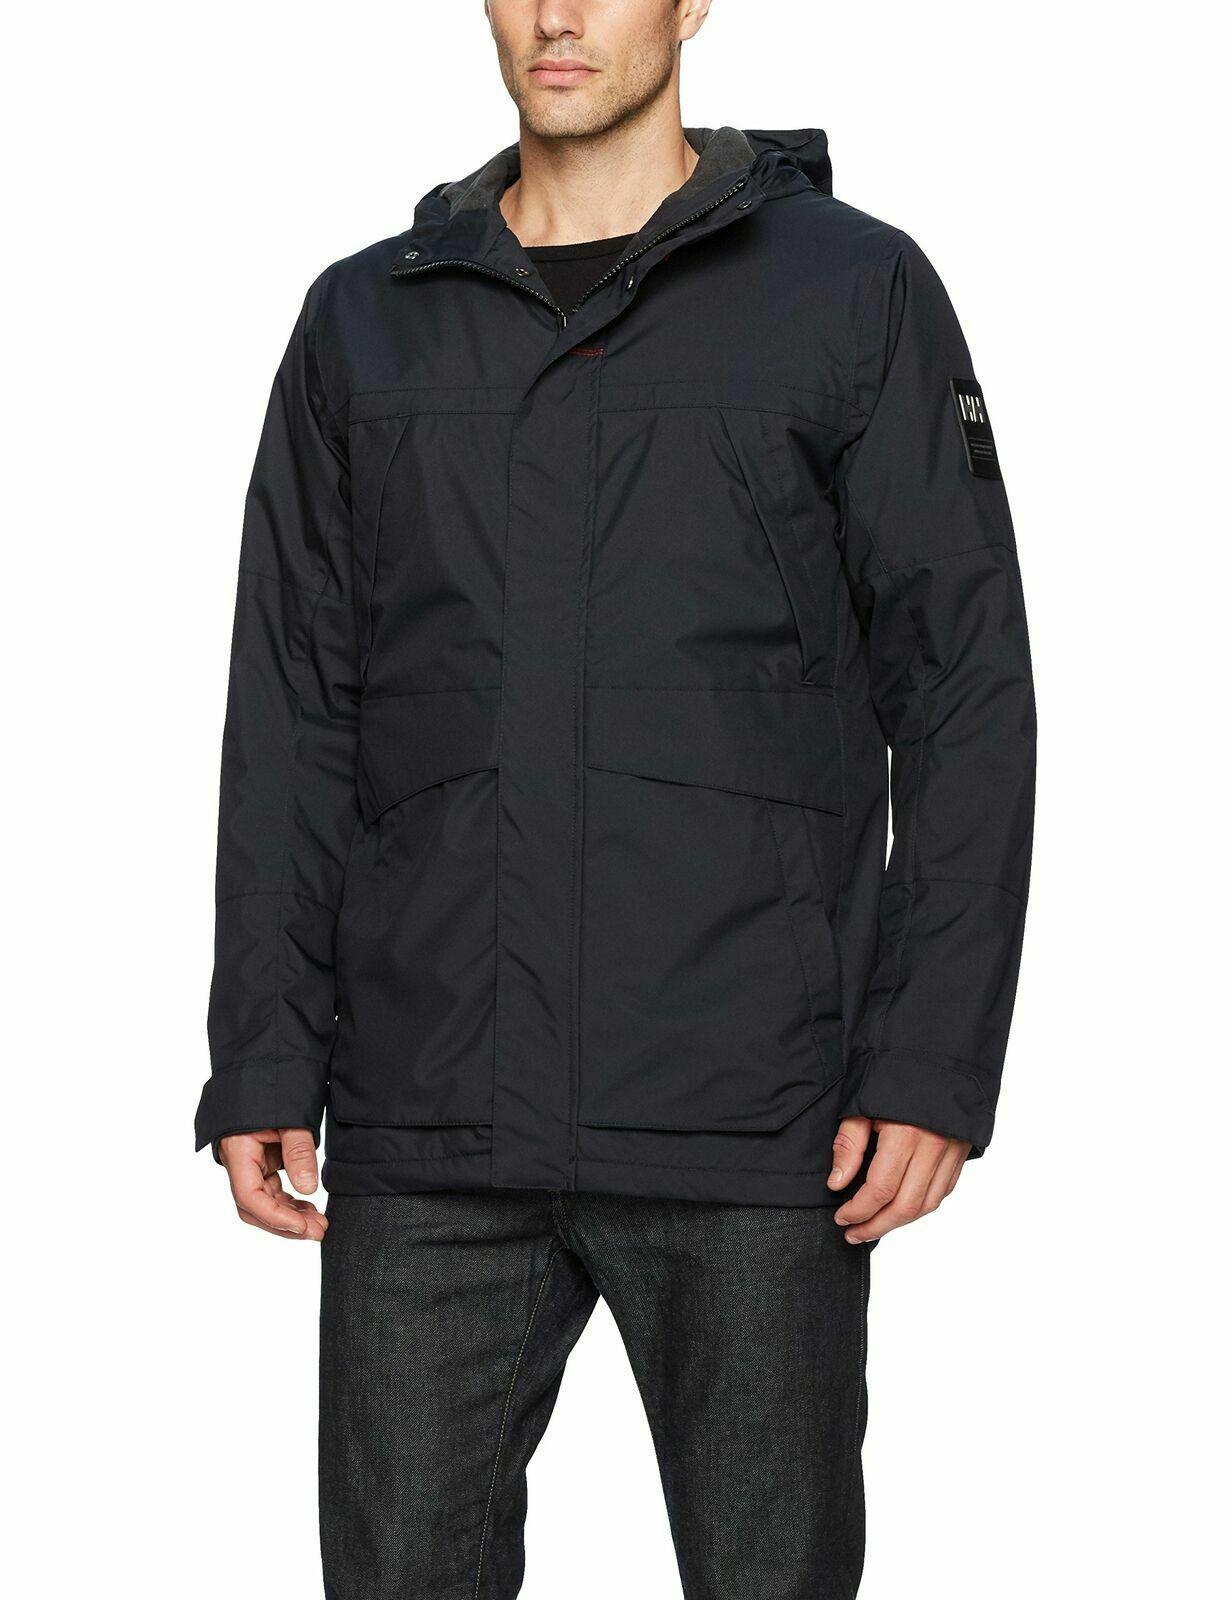 Helly Hansen Men's Harbour Ski Jacket Insulated Hooded – Navy Blue L Clothing